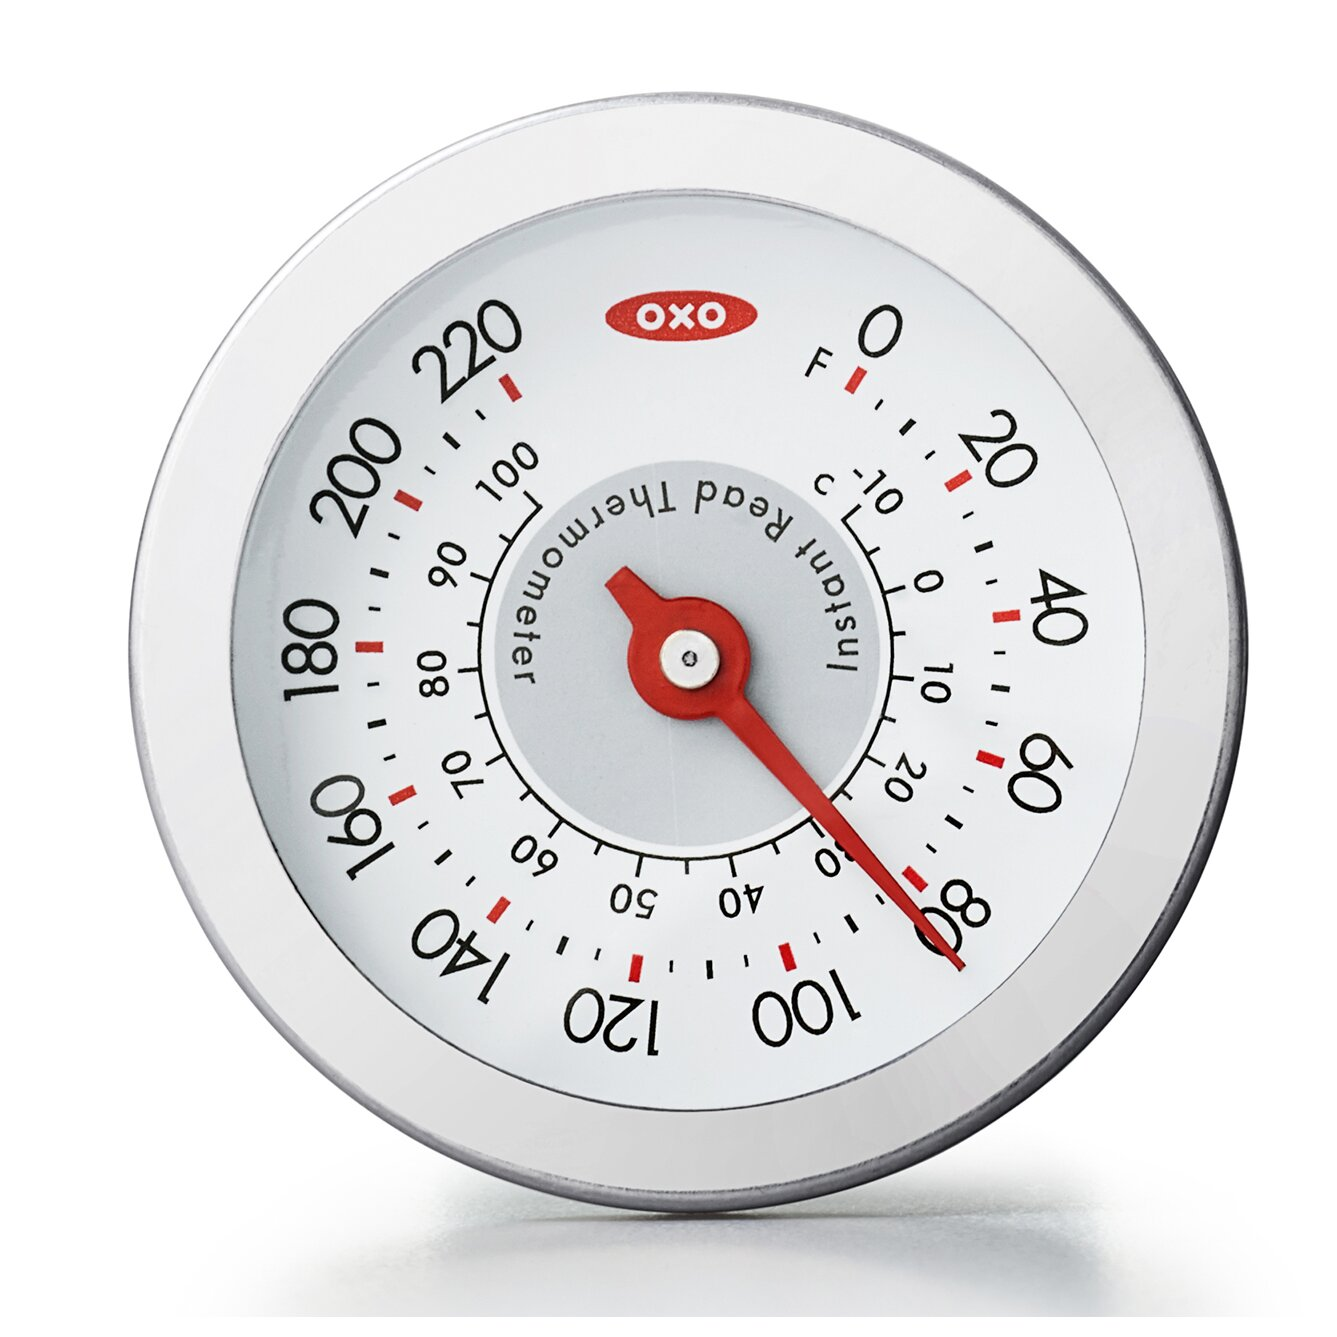 All clad instant read thermometer - Oxo Good Grips Chef S Precision Analog Instant Read Thermometer